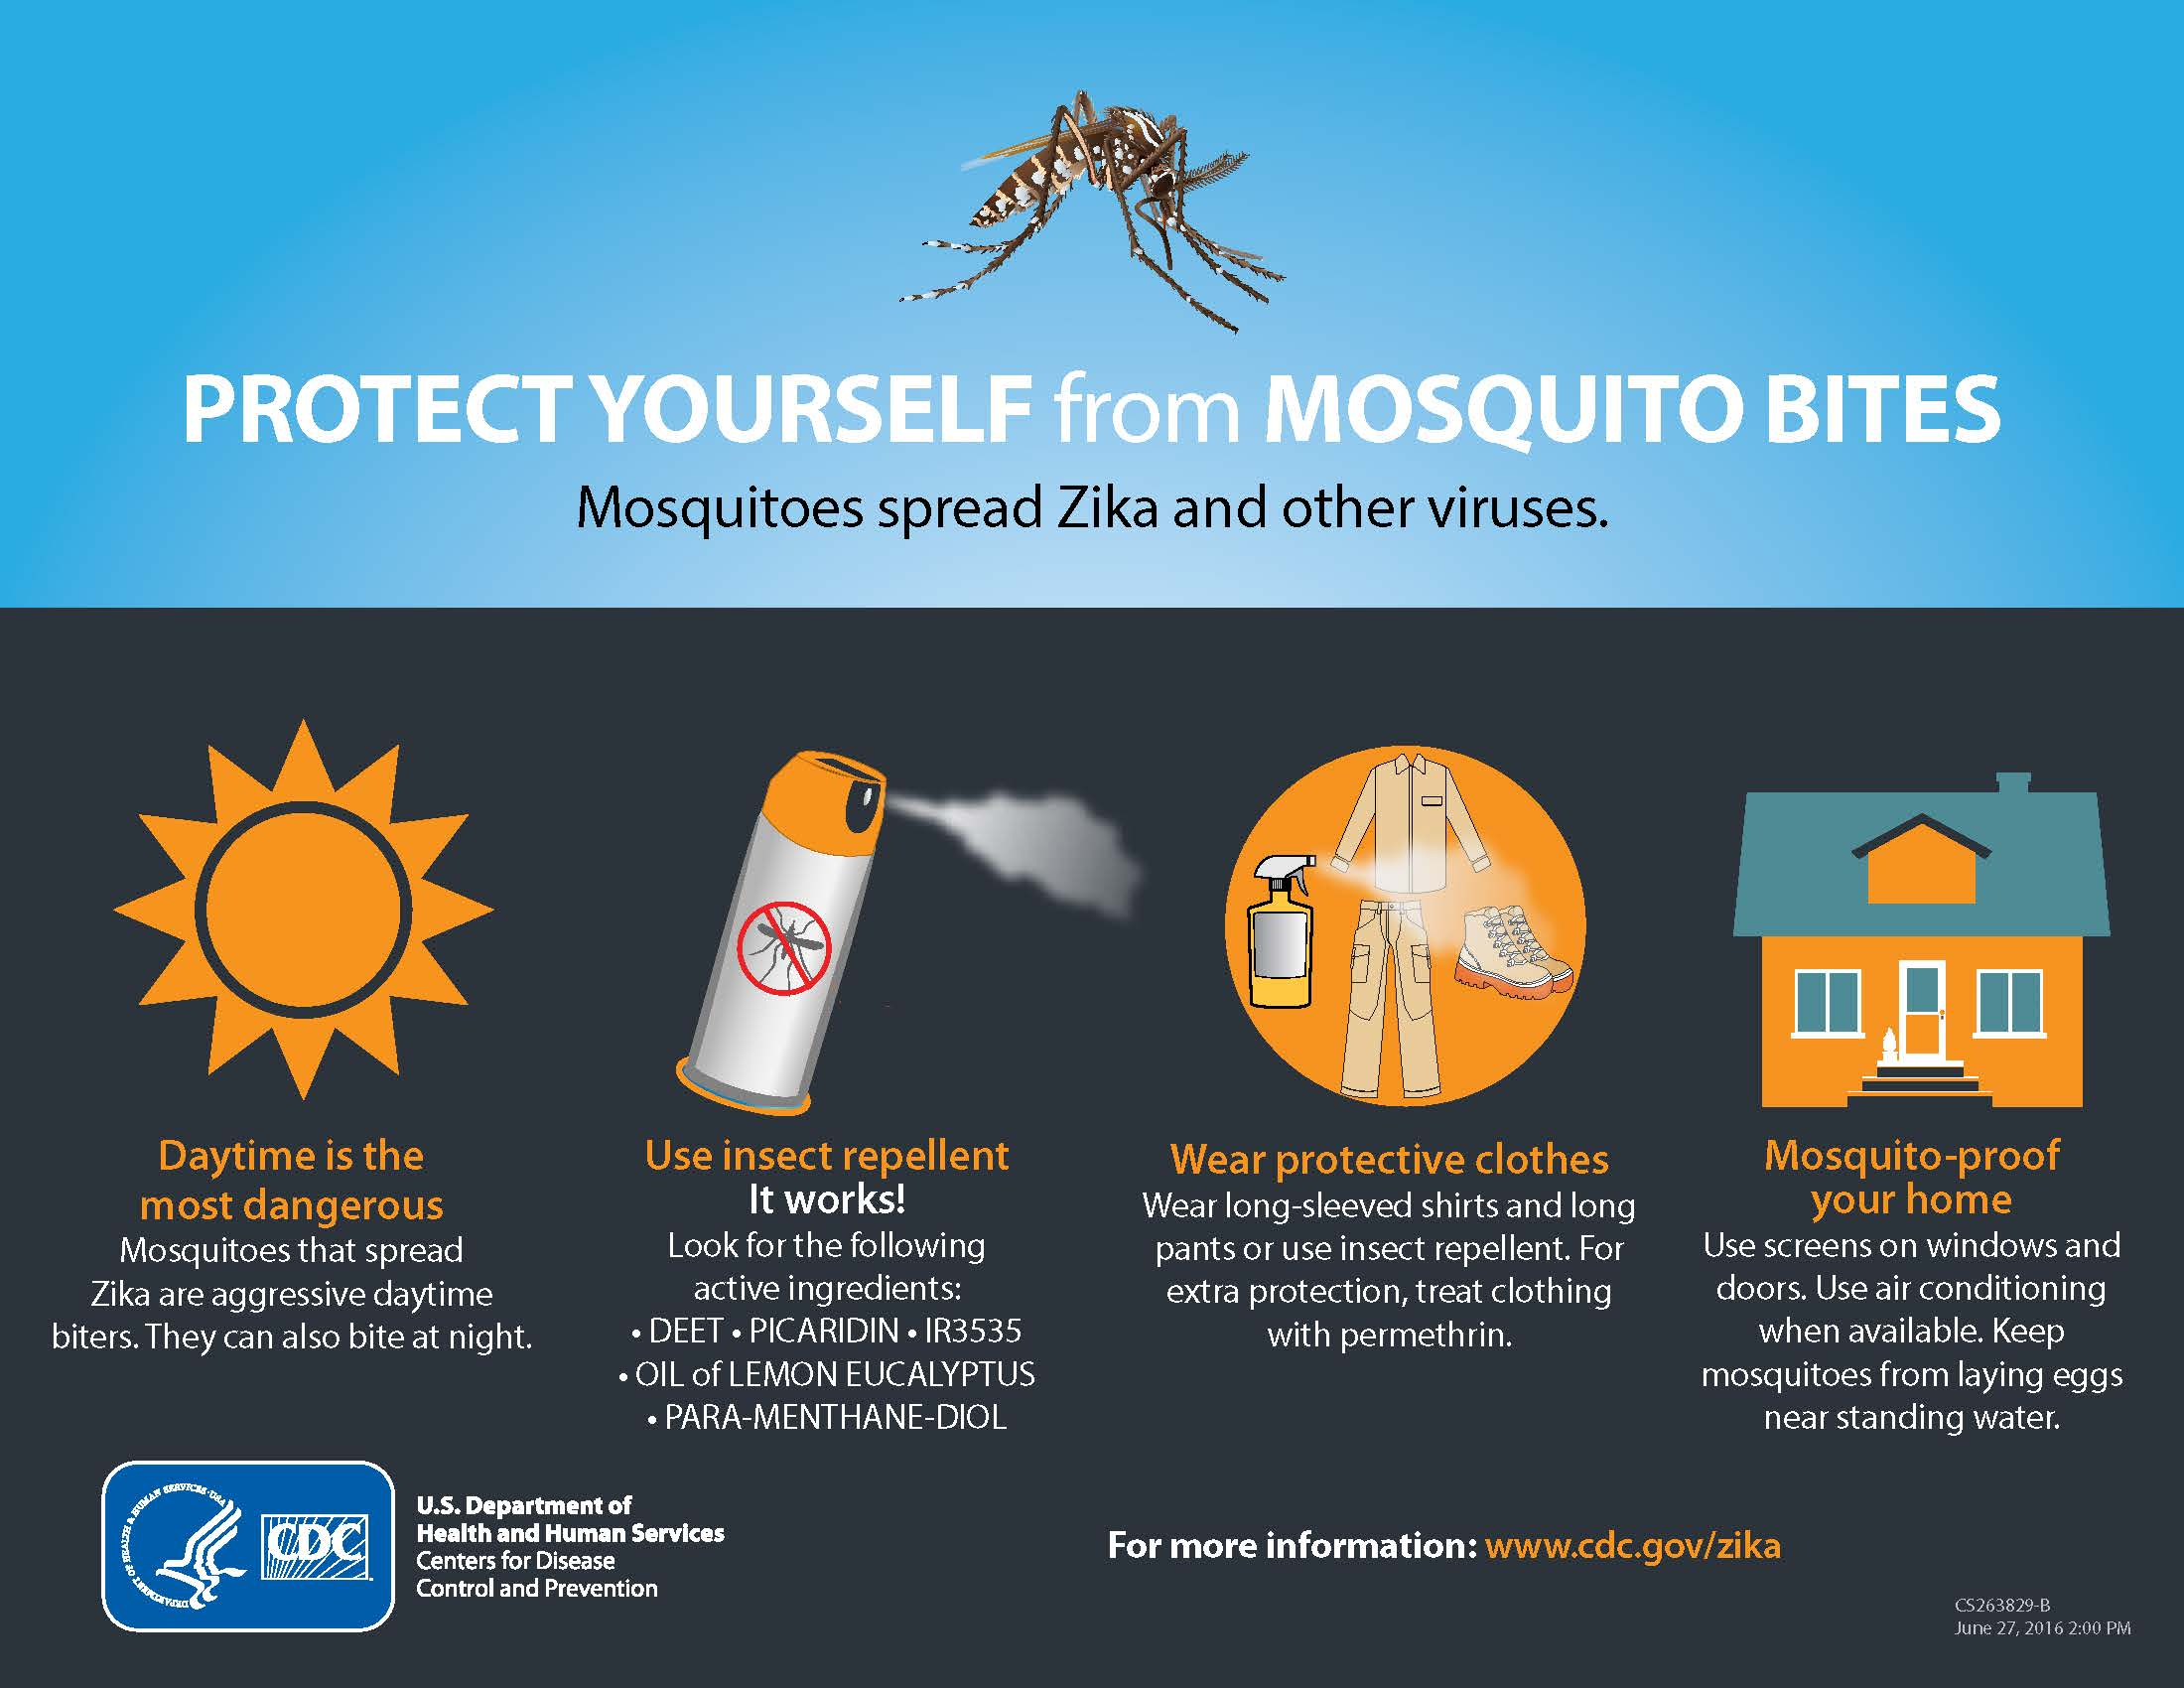 zika_protect_yourself_from_mosquito_bites.jpg